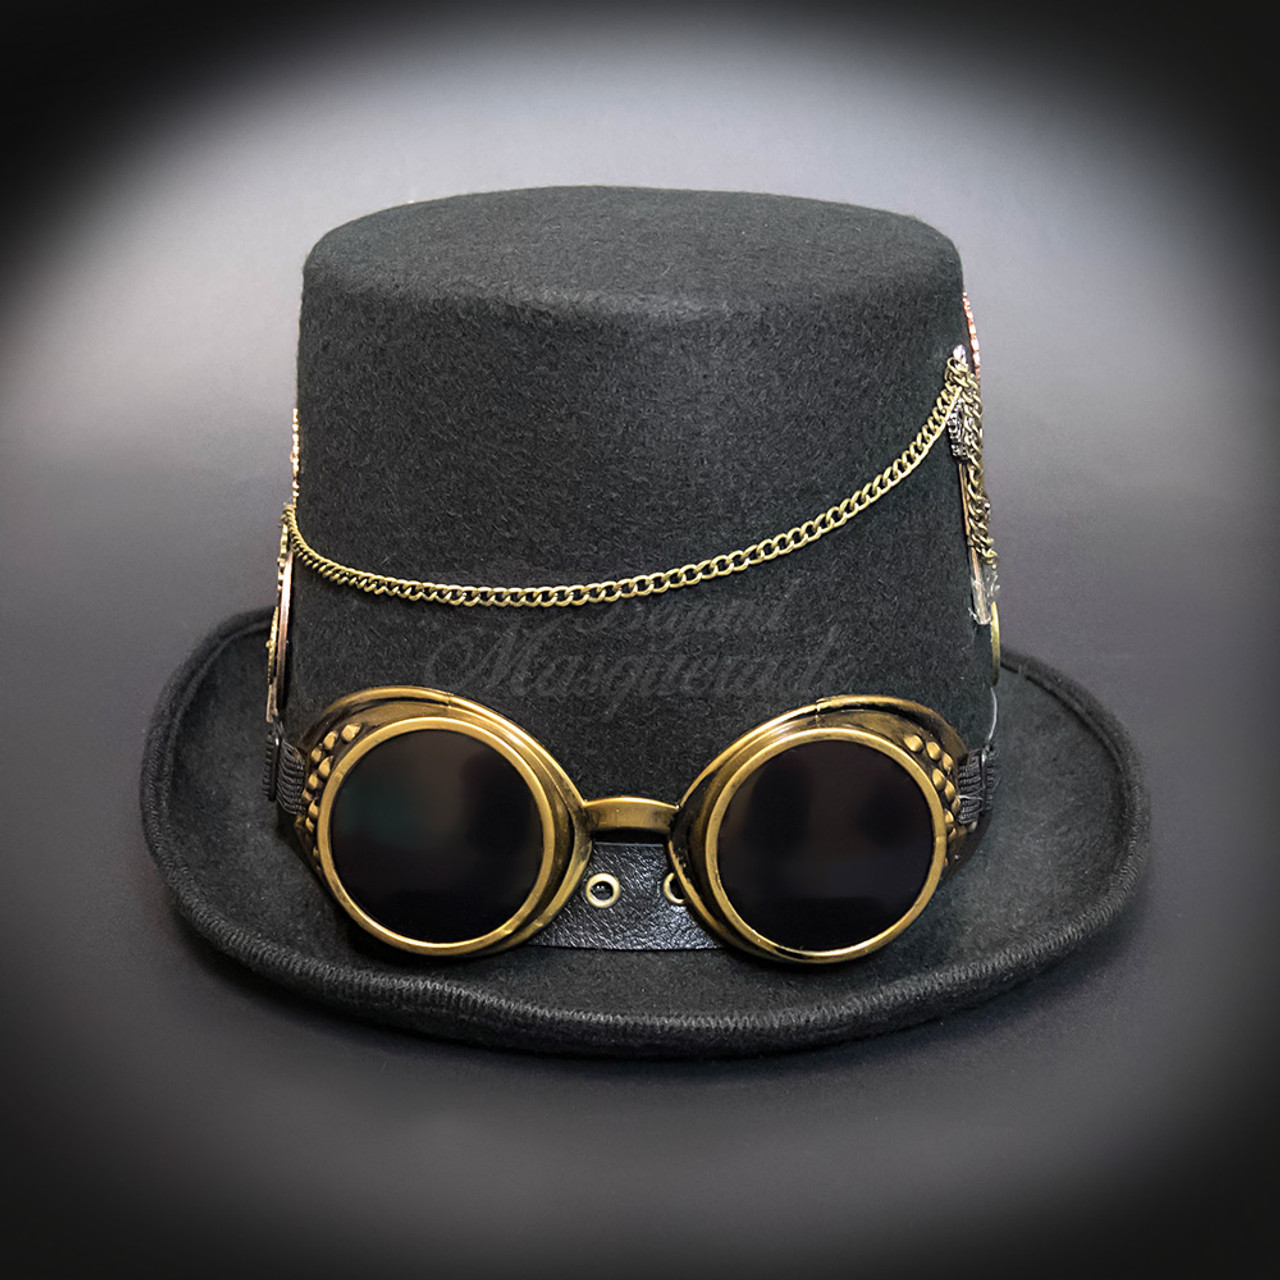 78f0c2028ee11 Steampunk Costume Black Hat Gold Goggles Gold Chains